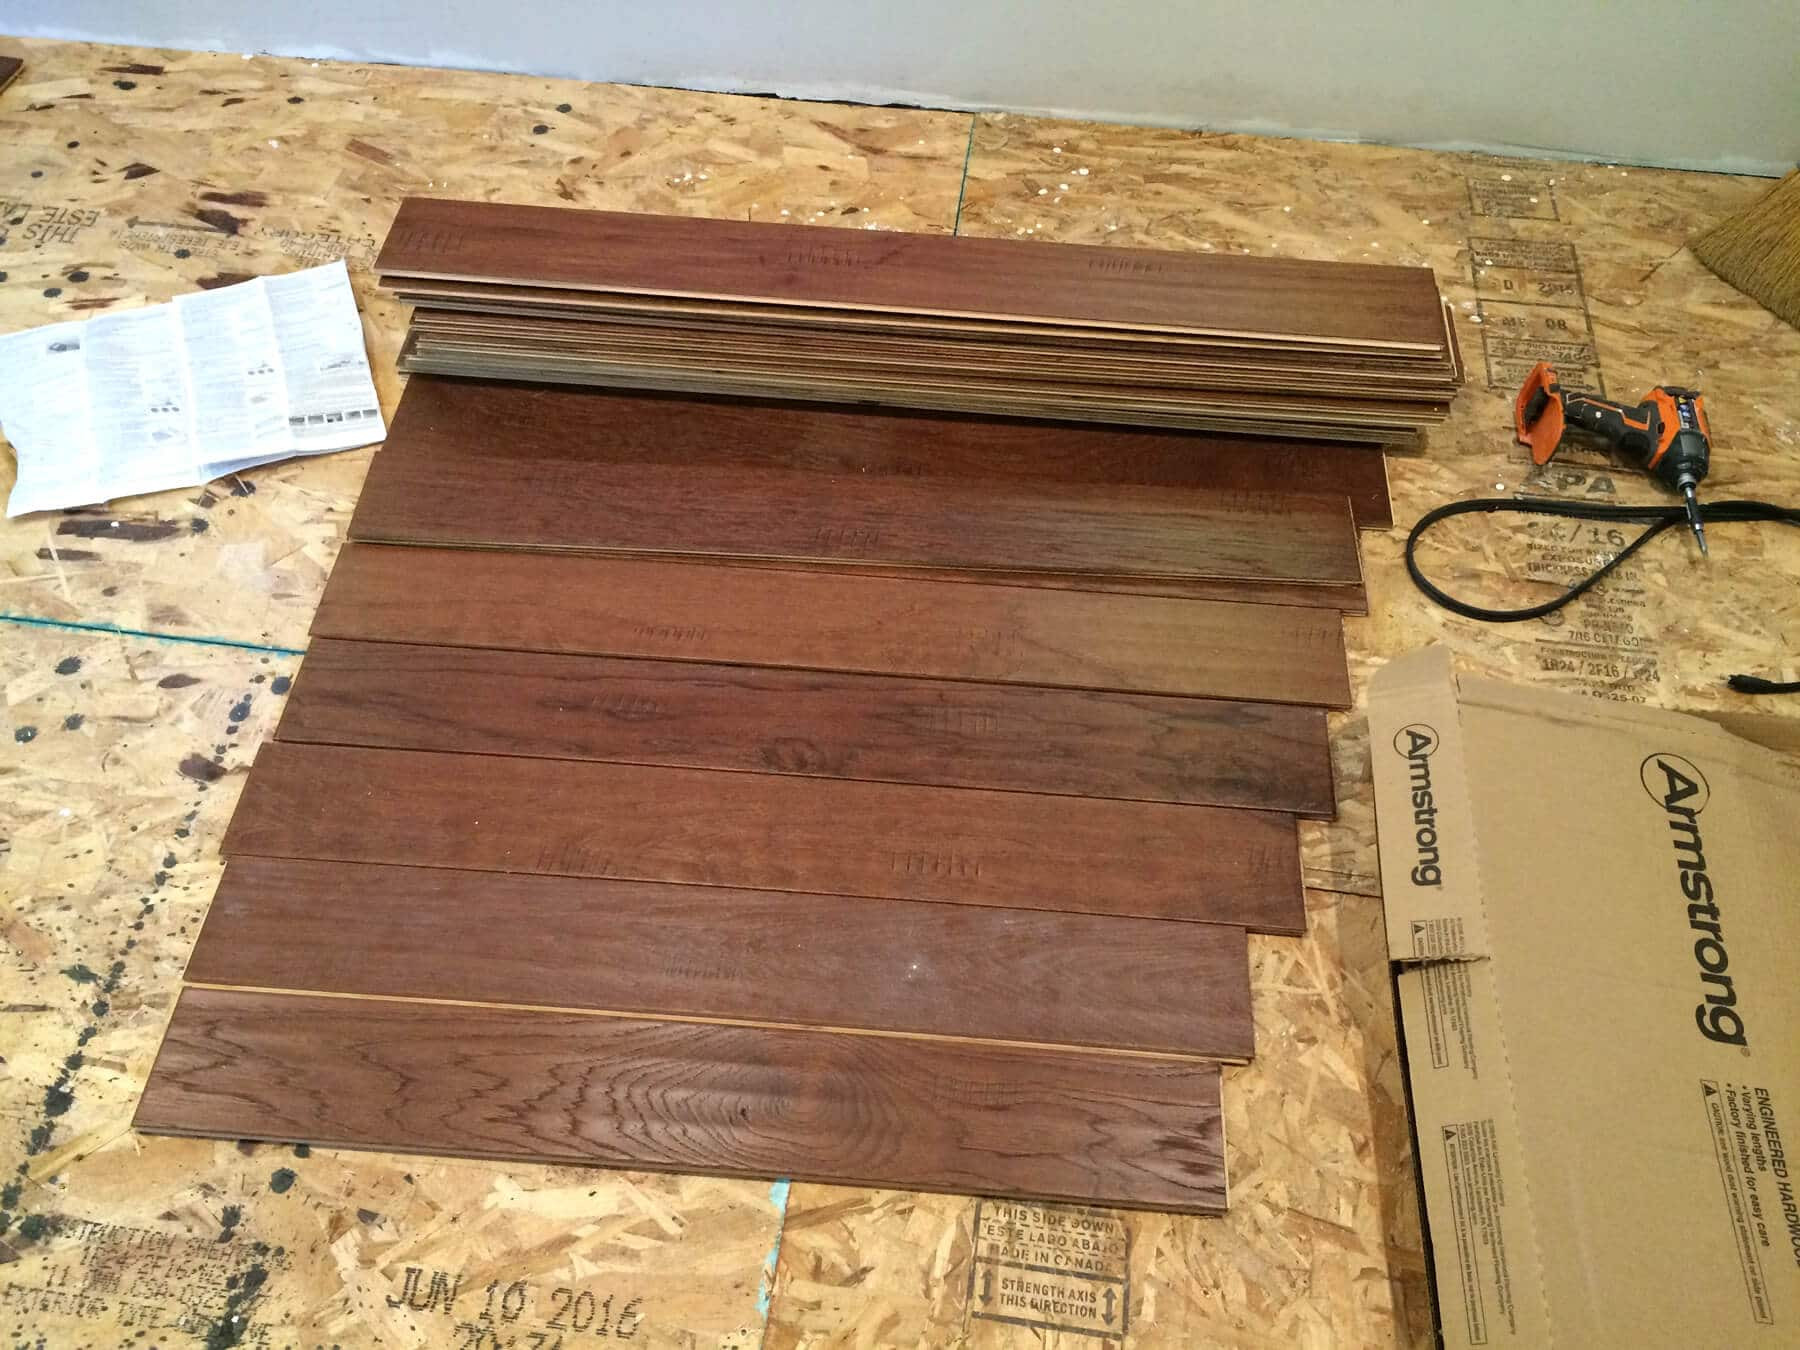 hardwood flooring colors 2016 of the micro dwelling project part 5 flooring the daring gourmet pertaining to laying down the sub flooring was fine but honestly the thought of installing hardwood floors seemed extremely intimidating we were pretty nervous going in